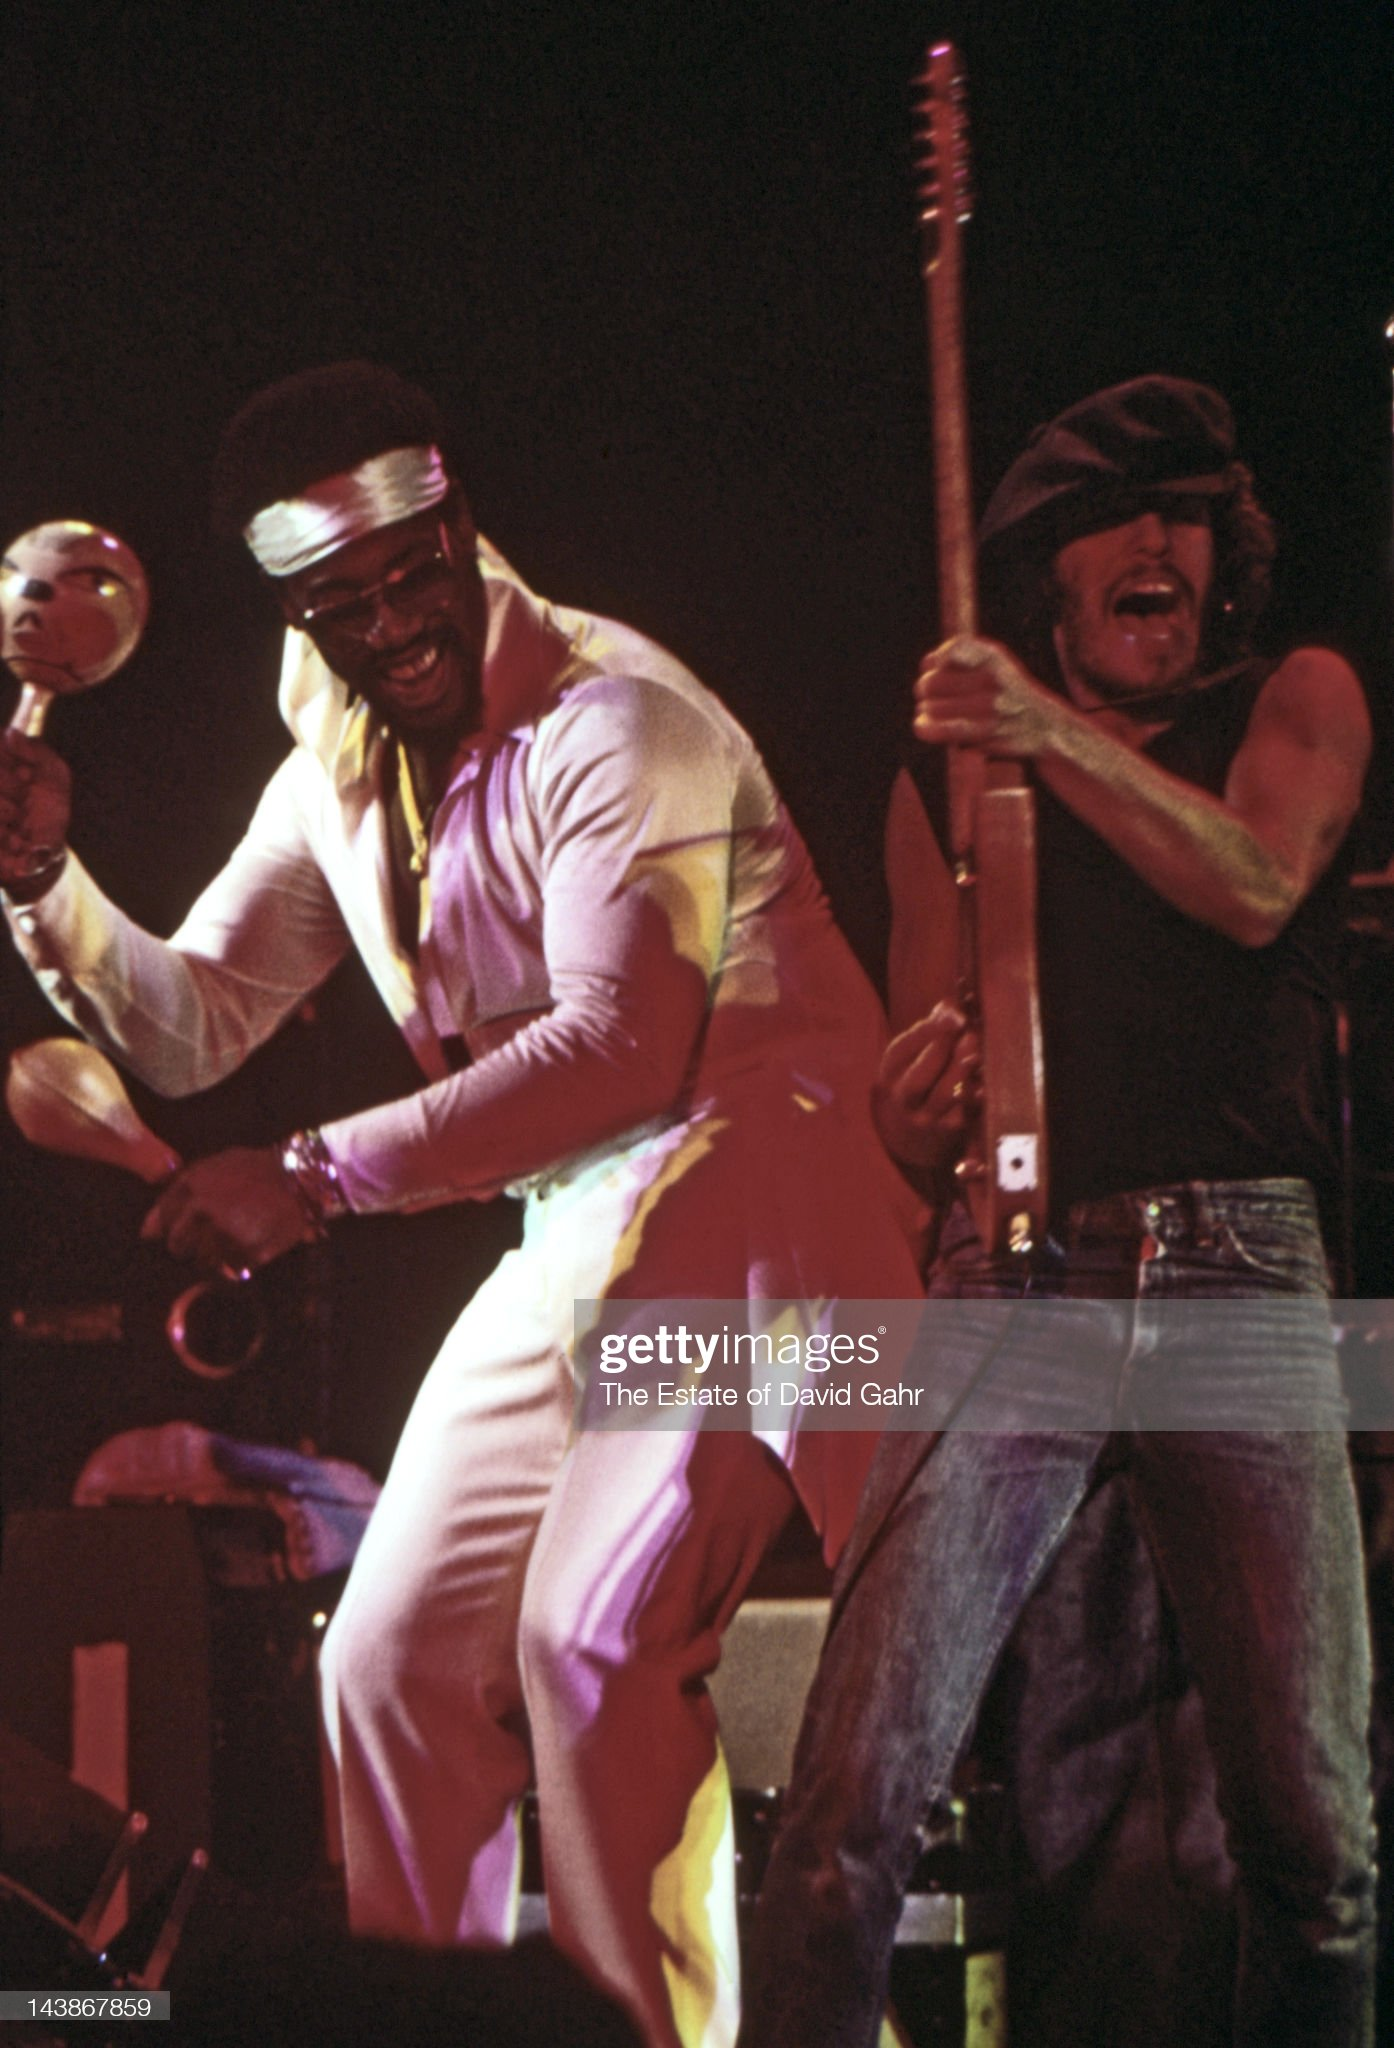 saxophonist-clarence-clemons-and-singer-